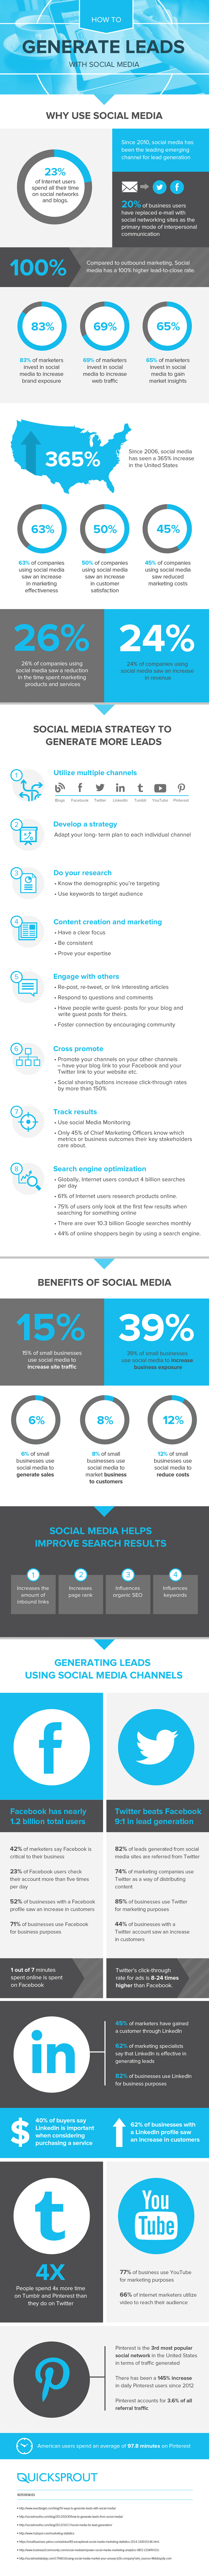 An 8-step strategy to generate leads with social media. #infographic